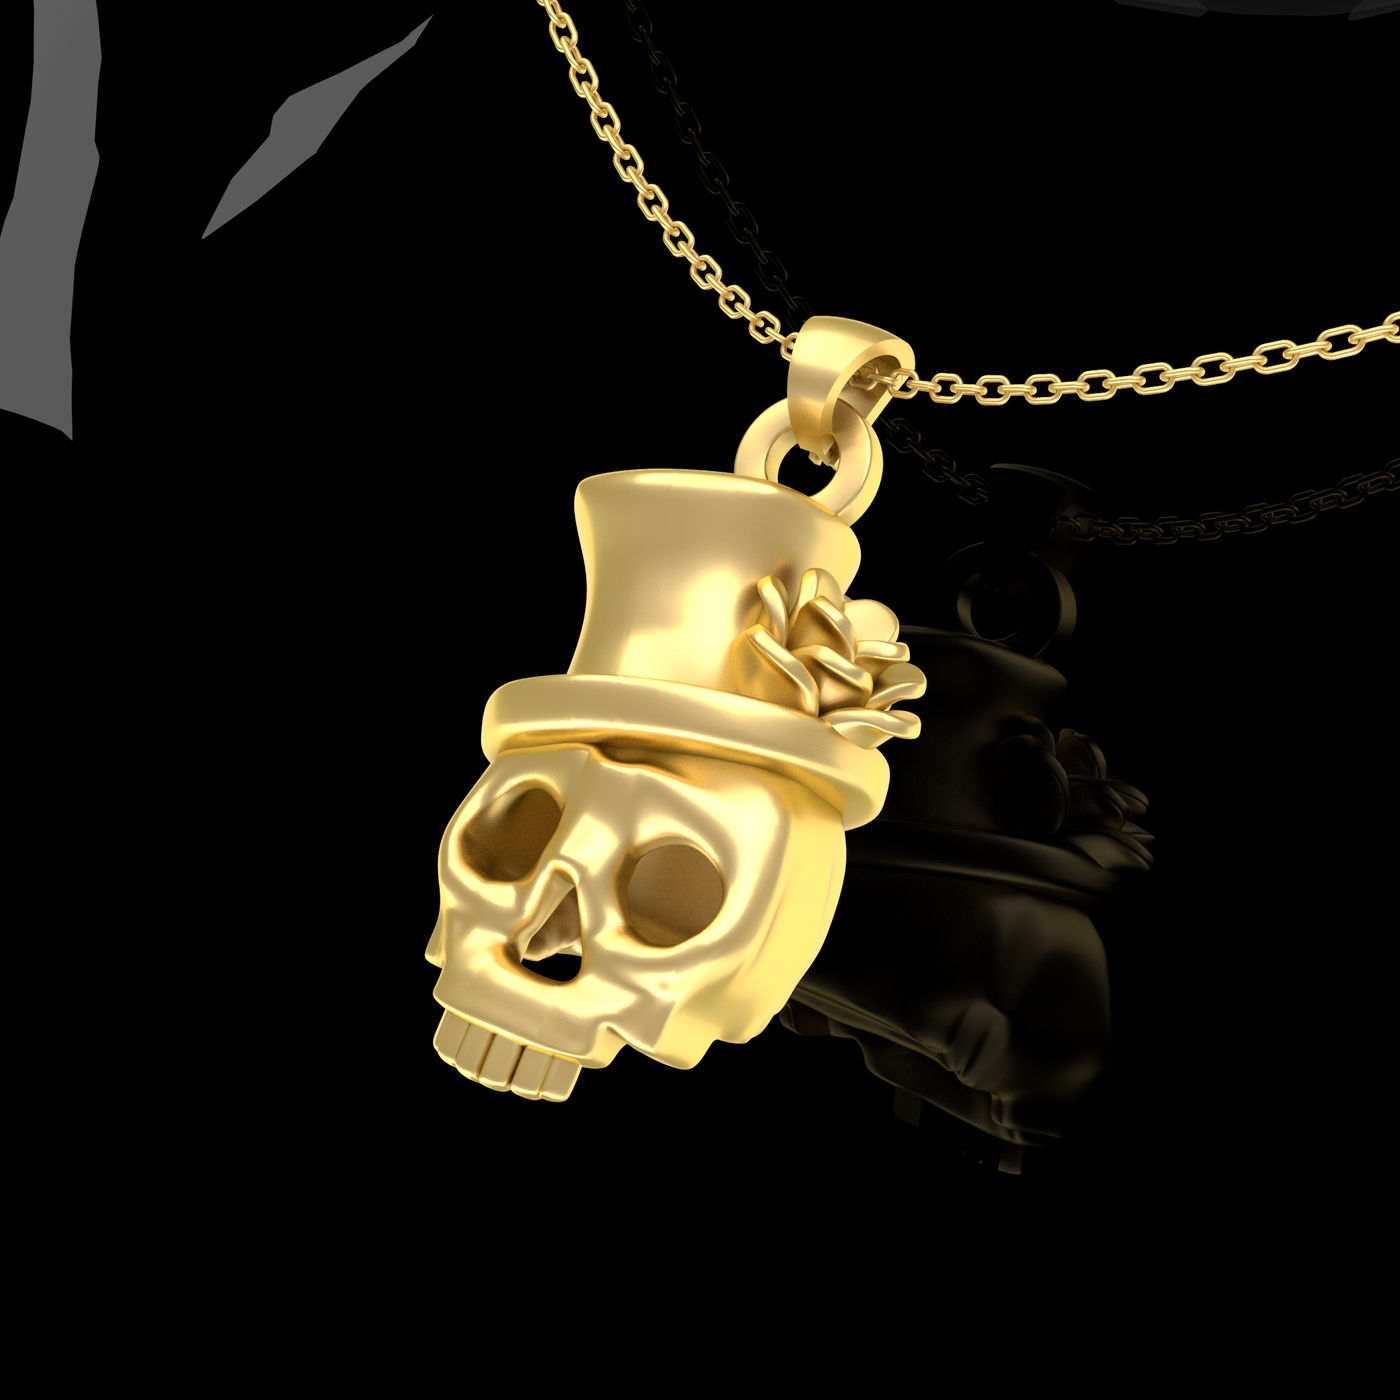 Rose hat skull pendant jewelry Gold 3D print model